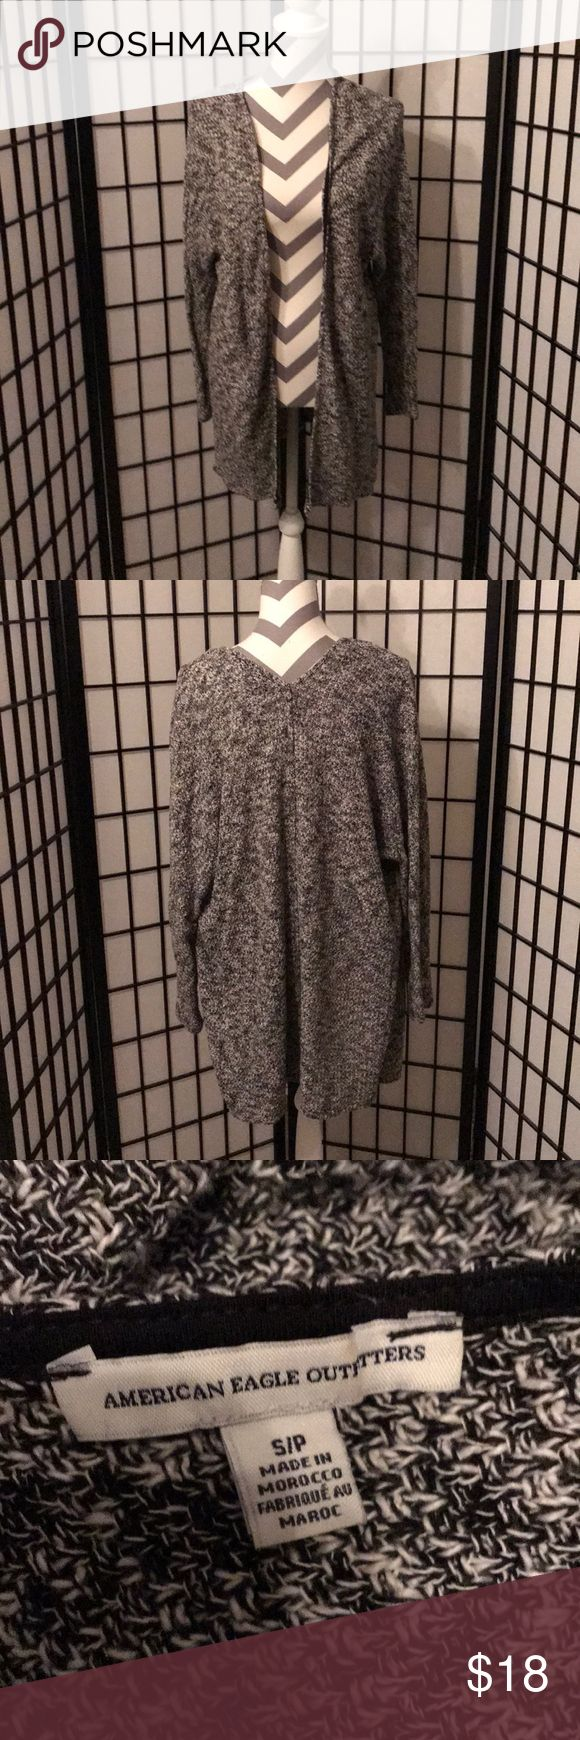 American Eagle Outfitters Sweater American Eagle Outfitters Sweater  Perfect condition Sz S American Eagle Outfitters Sweaters Shrugs & Ponchos #americaneagleoutfitters